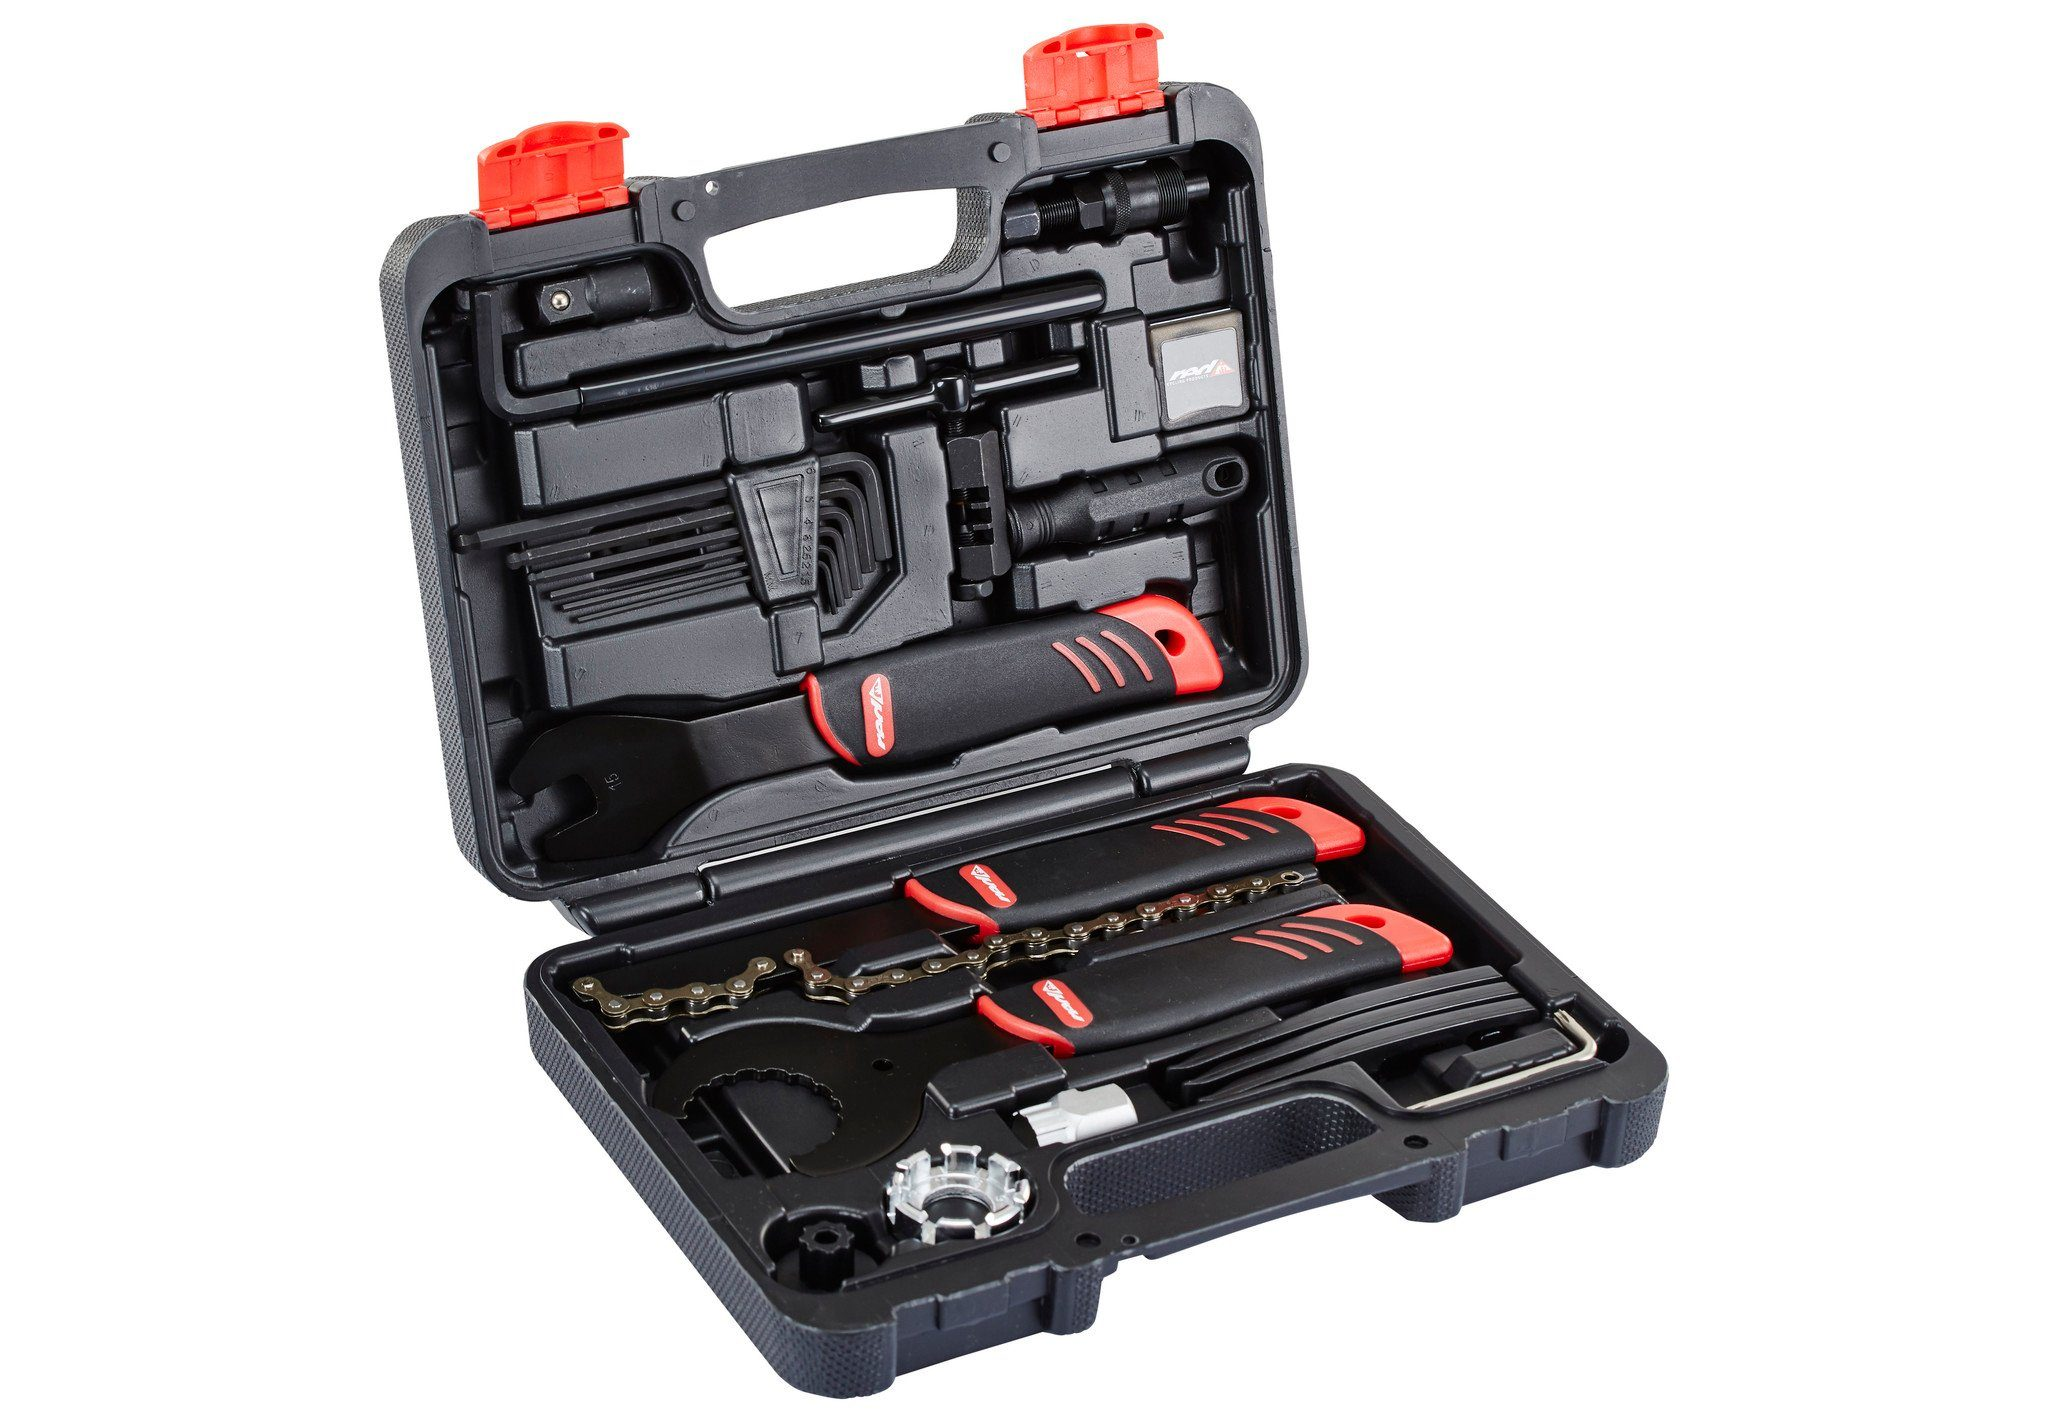 Red Cycling Products Werkzeug & Montage »Home Toolbox«